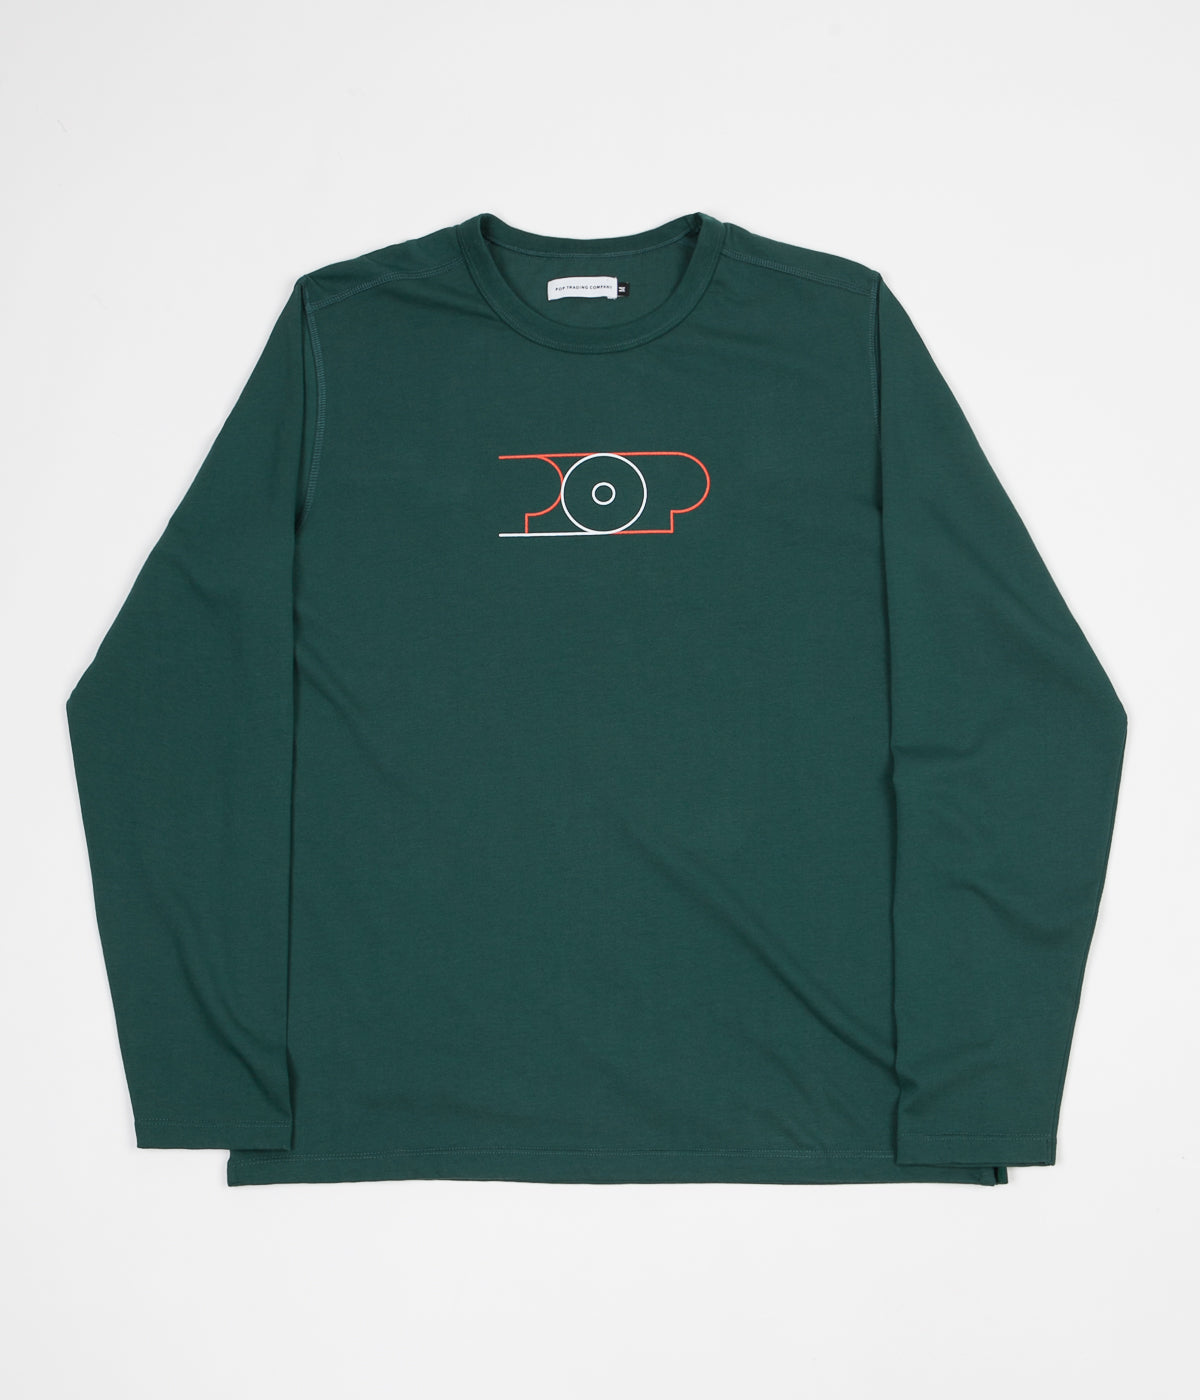 Pop Trading Company Lines Long Sleeve T-Shirt - Sports Green